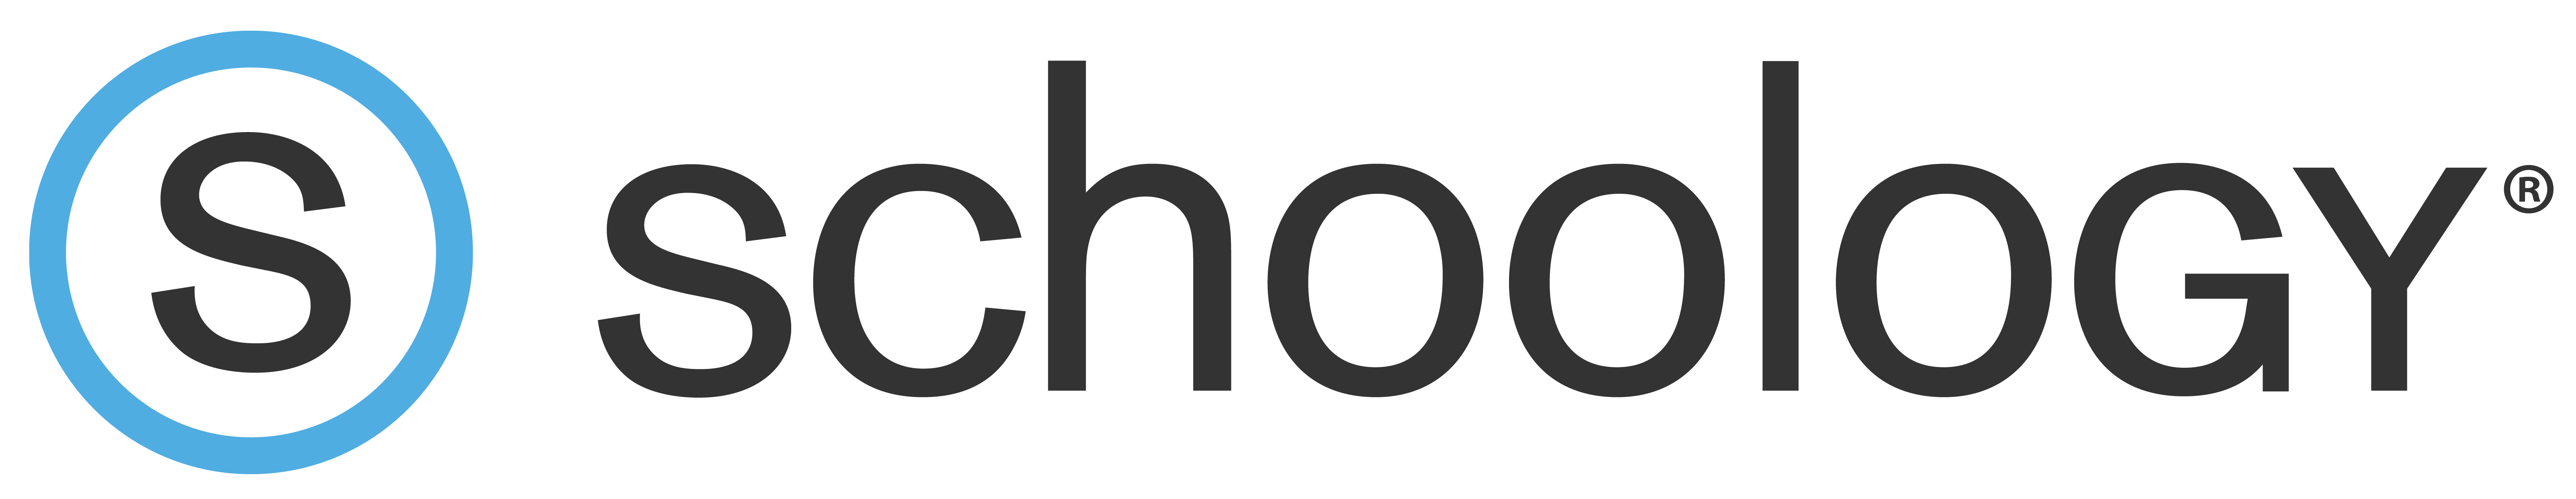 Schoology banner.png